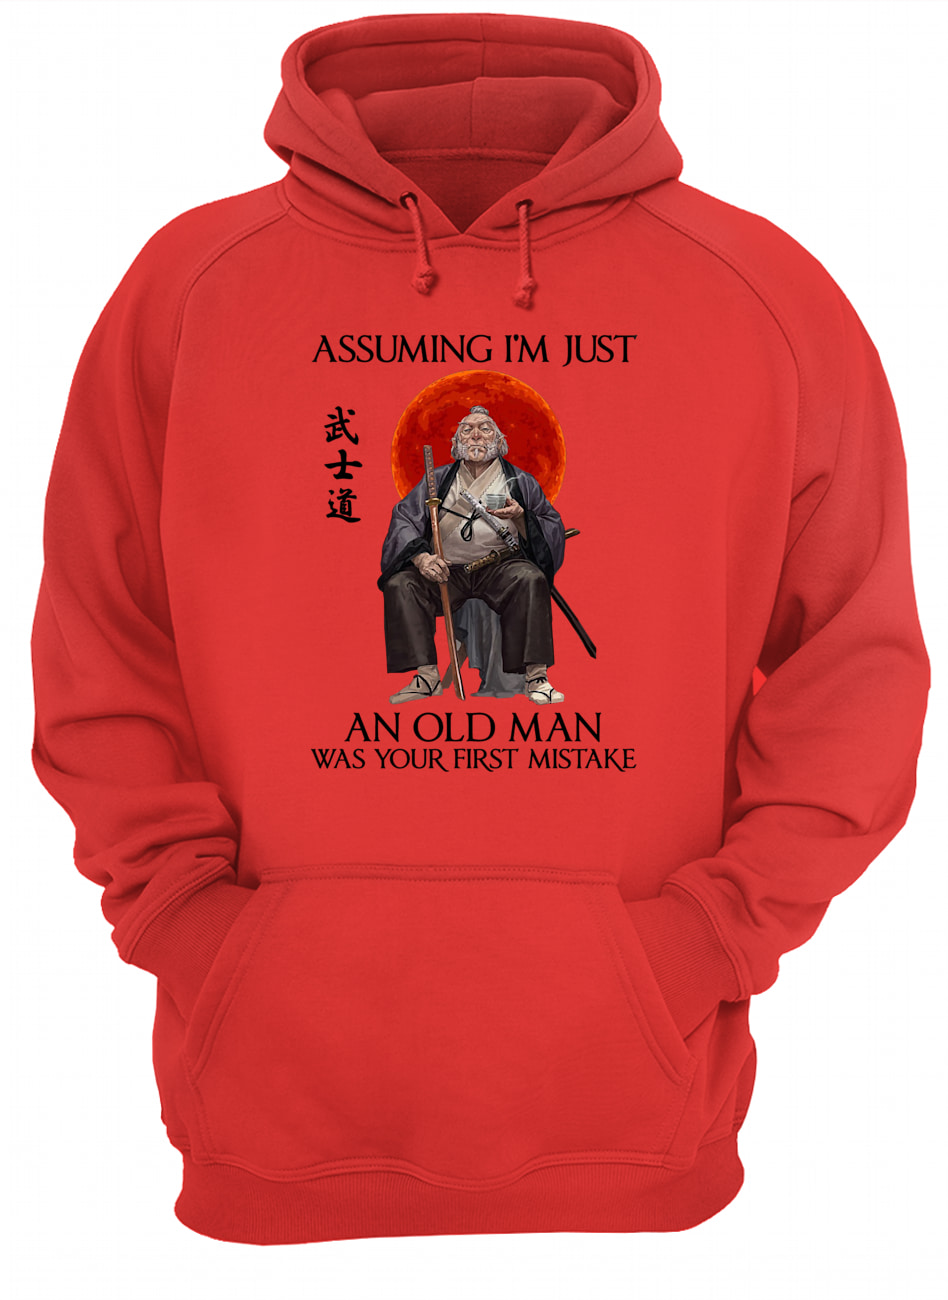 Assuming i'm just an old man was your first mistake samurai hoodie